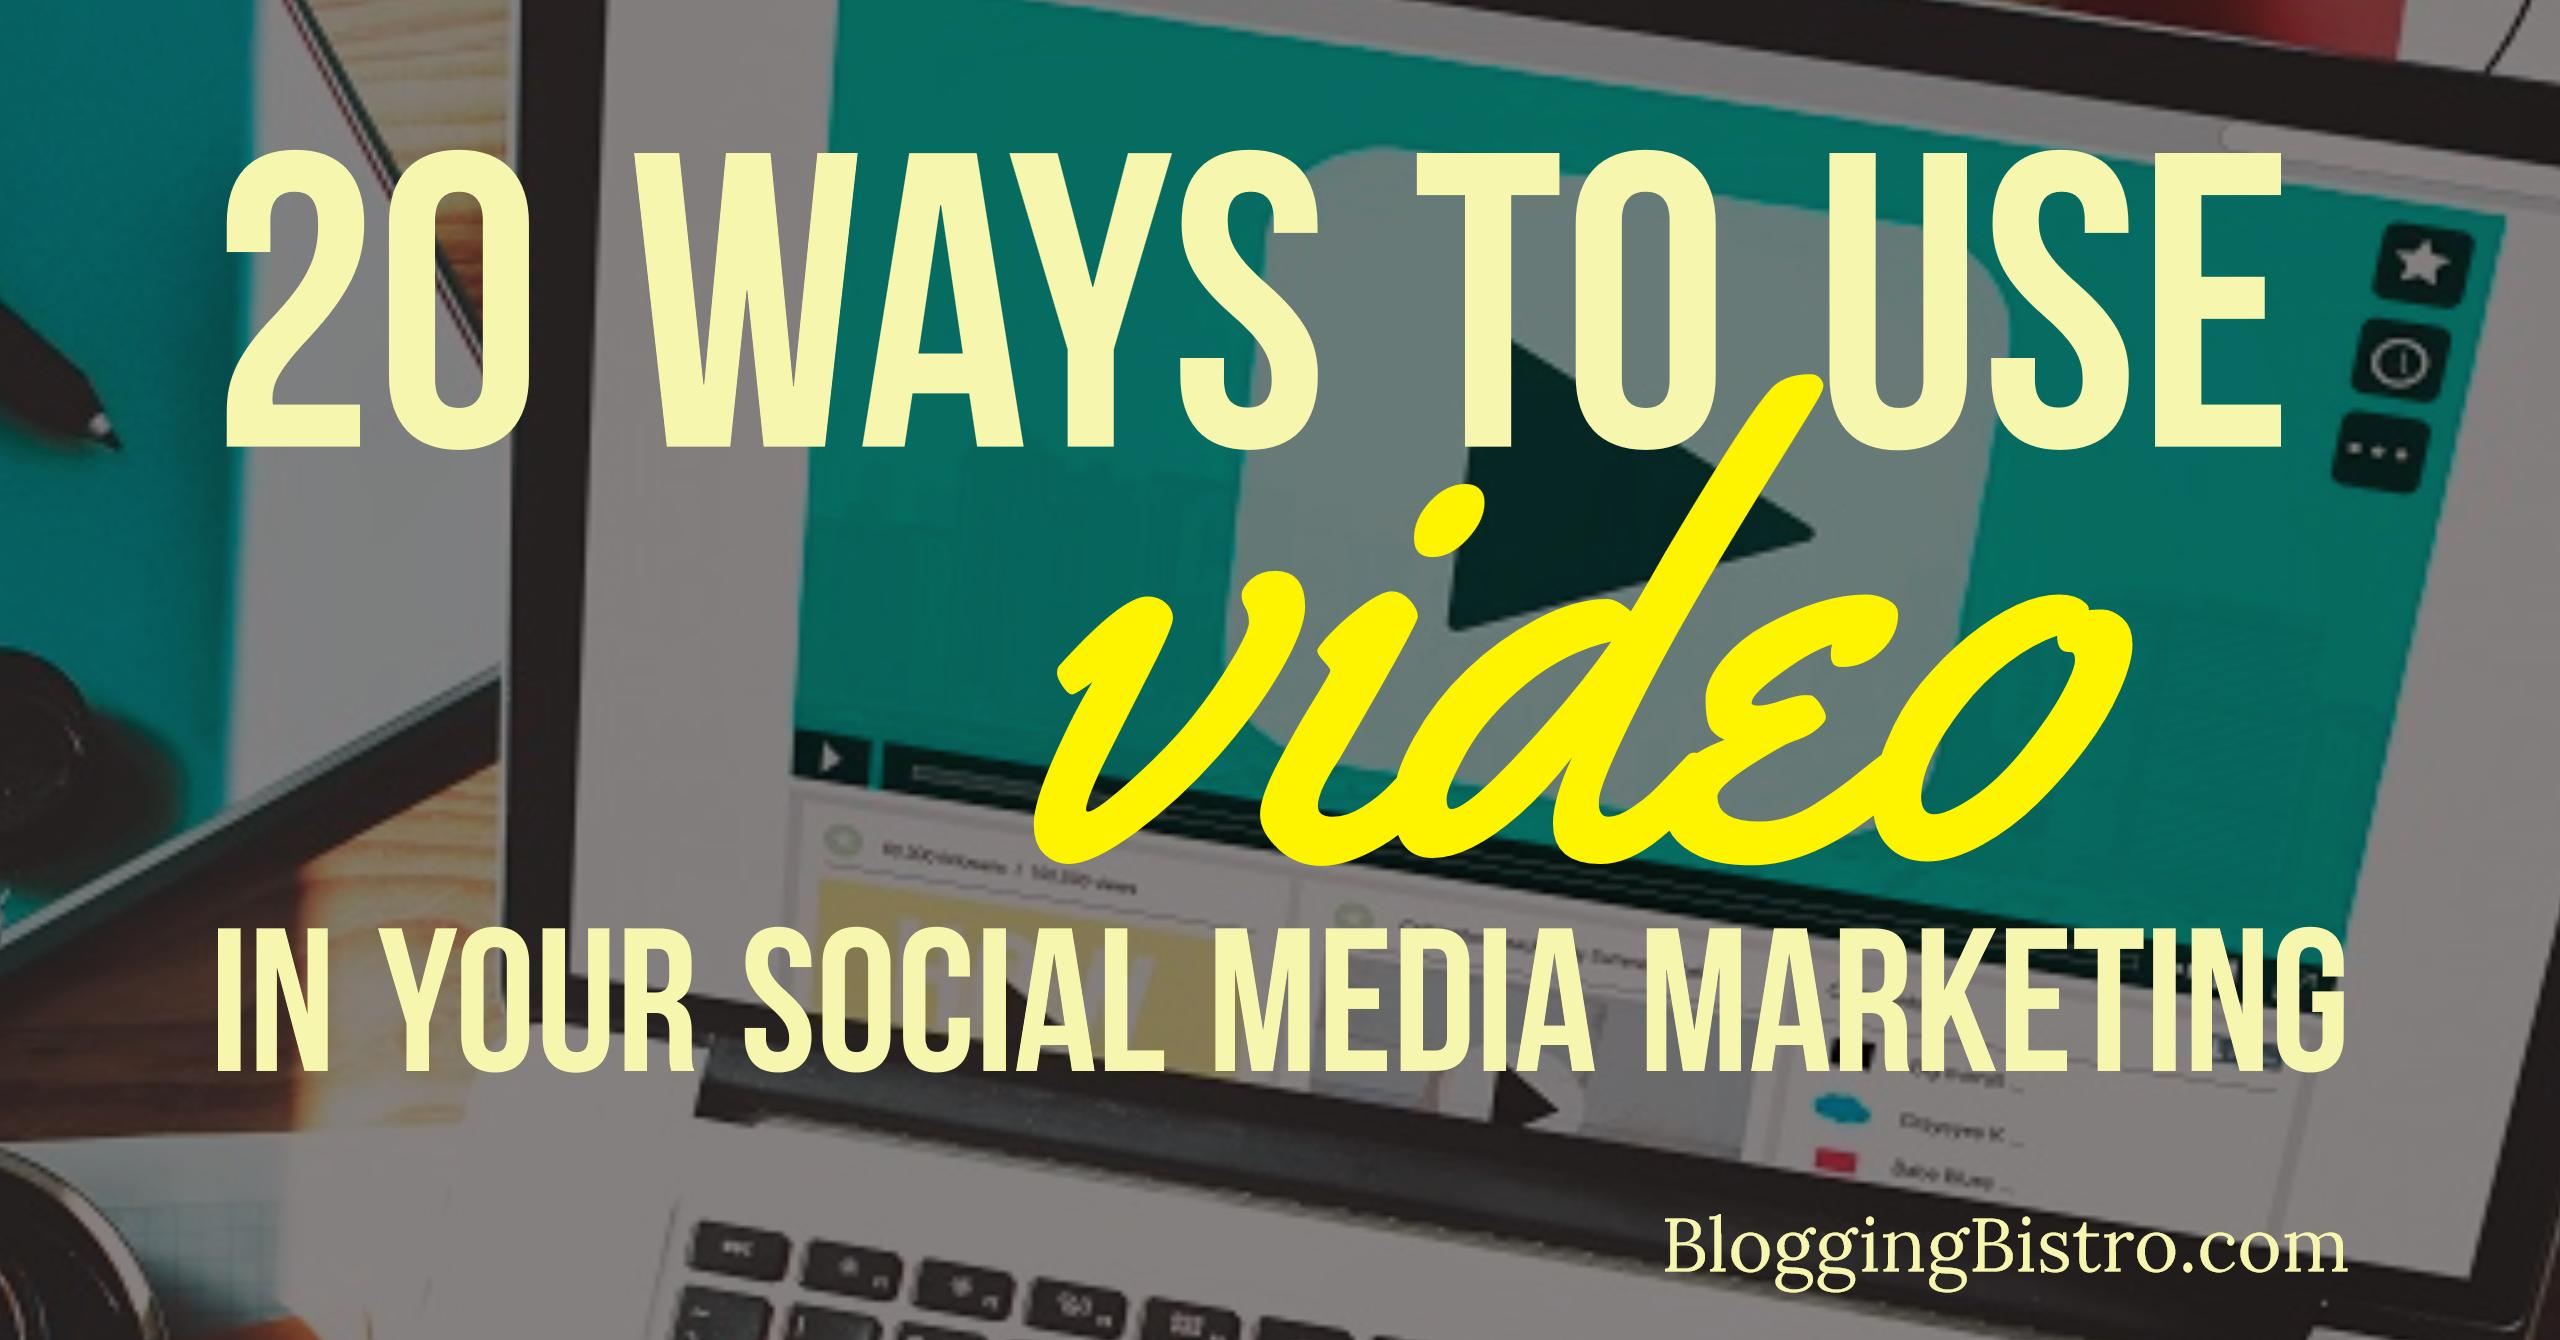 20 Ways to Use Videos in Your Social Media Marketing (Without Being